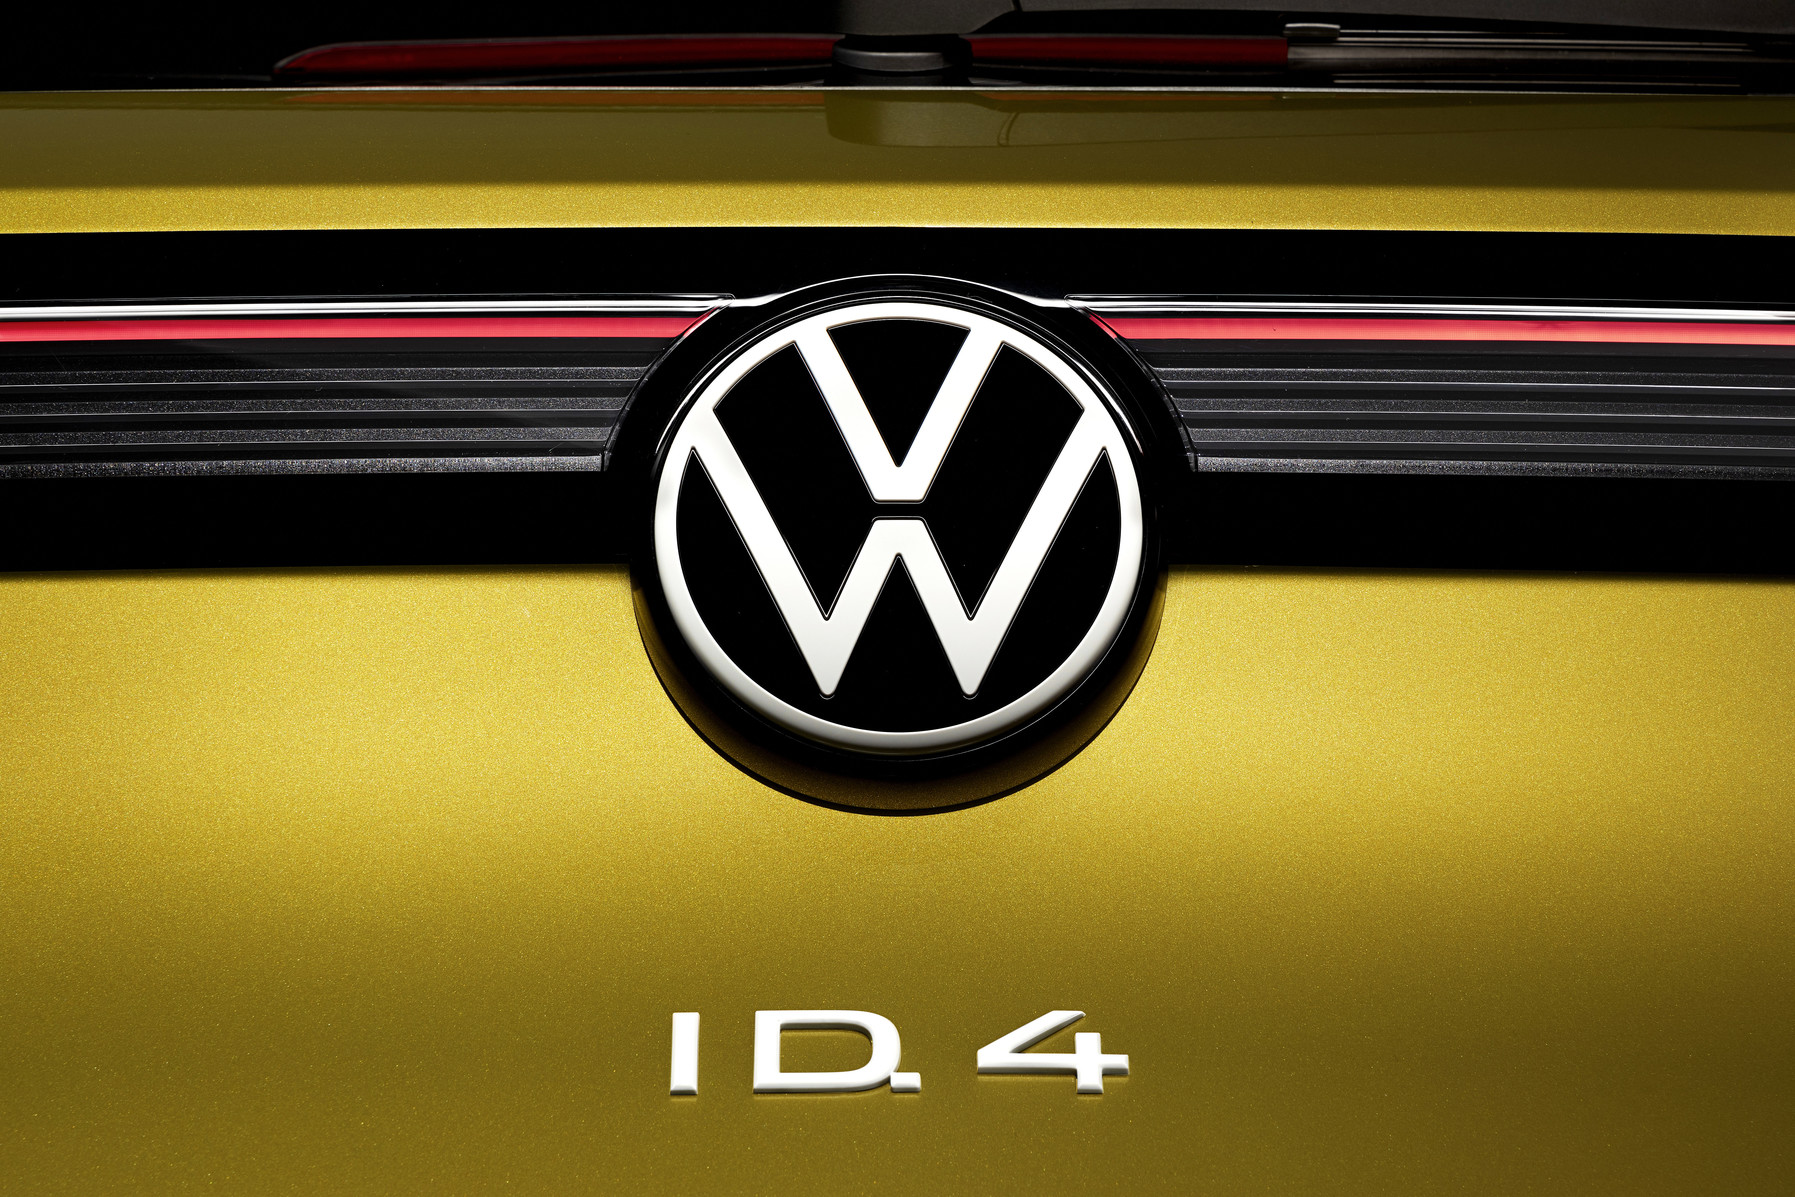 The new Volkswagen ID.4